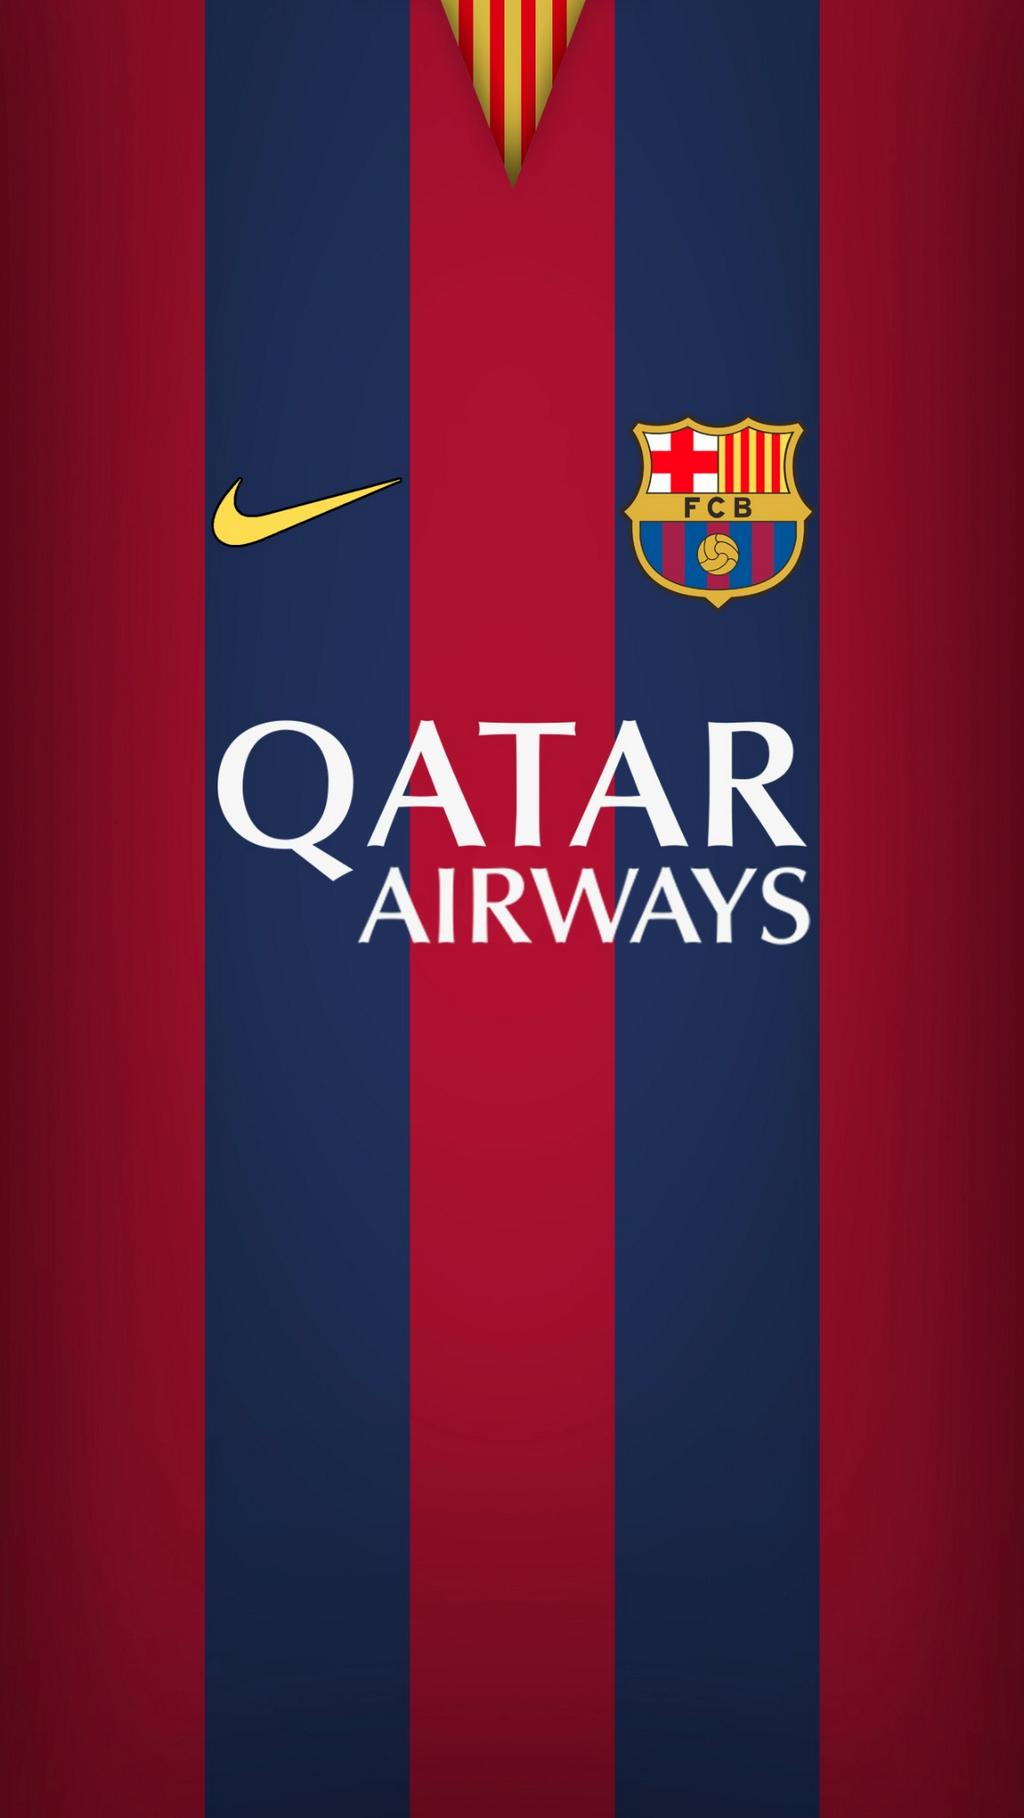 Fc barcelona wallpapers wallpaper cave for Oficina qatar airways madrid